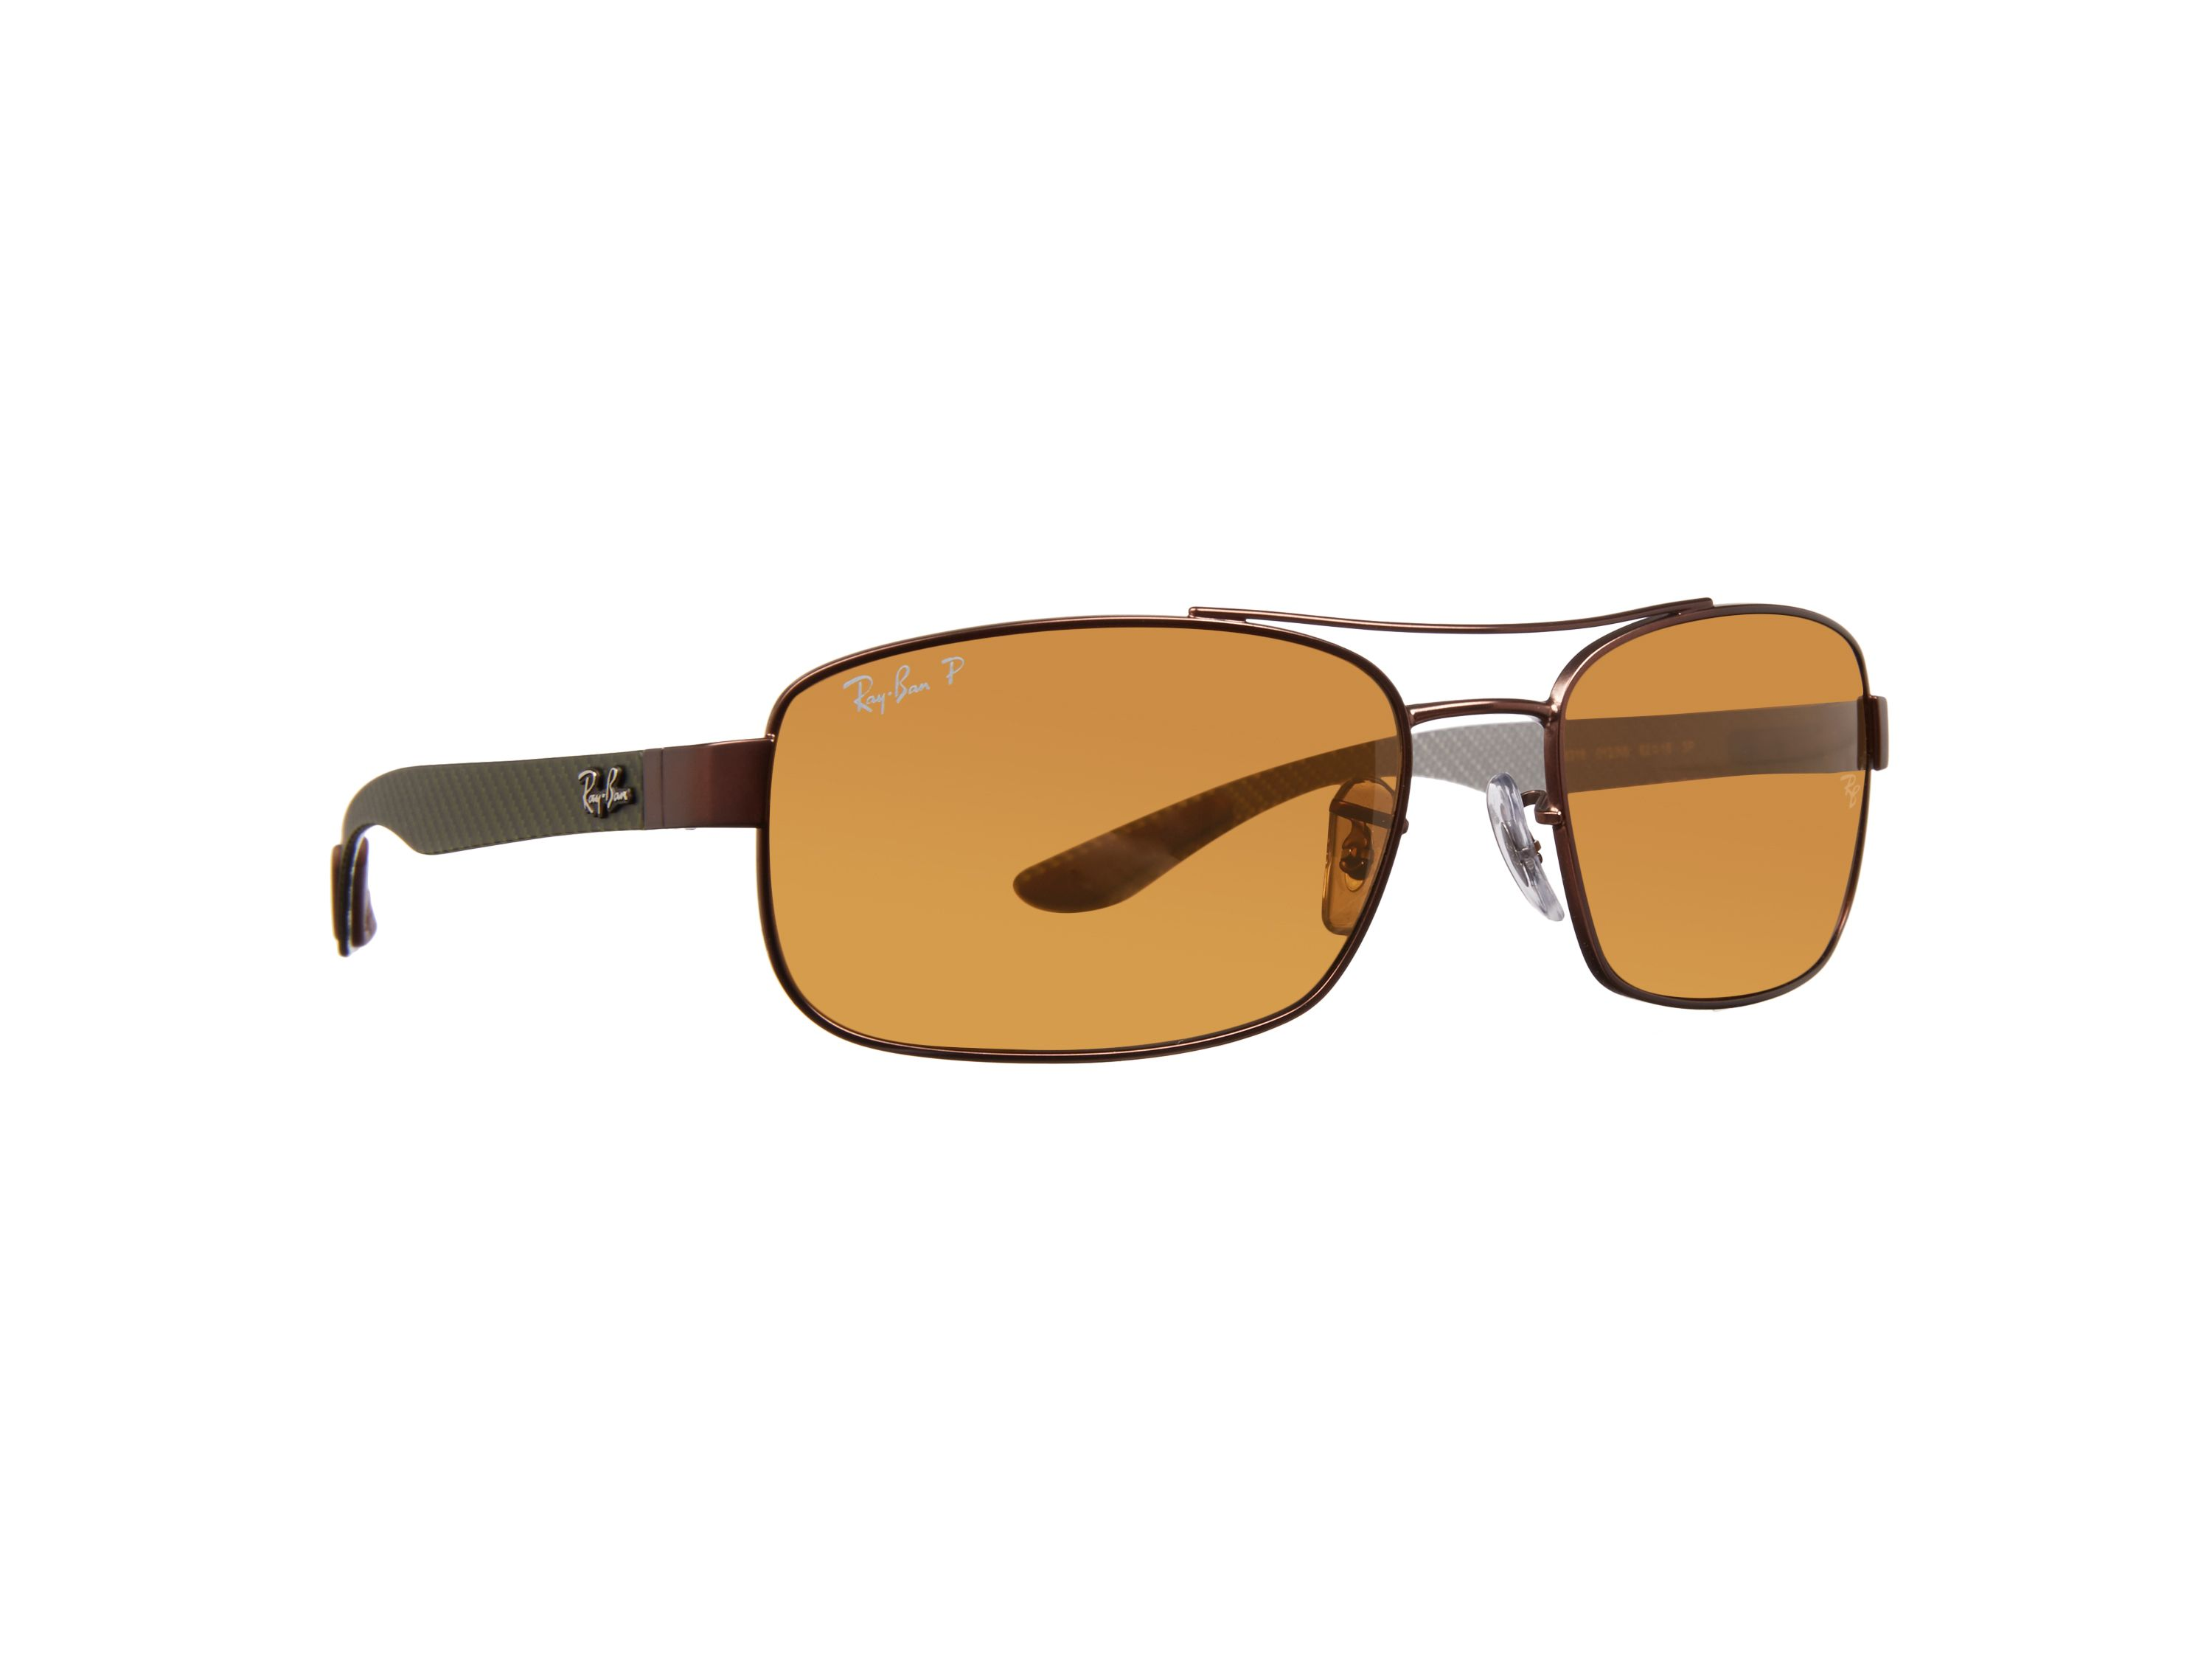 Rb8316 men`s rectangle sunglasses